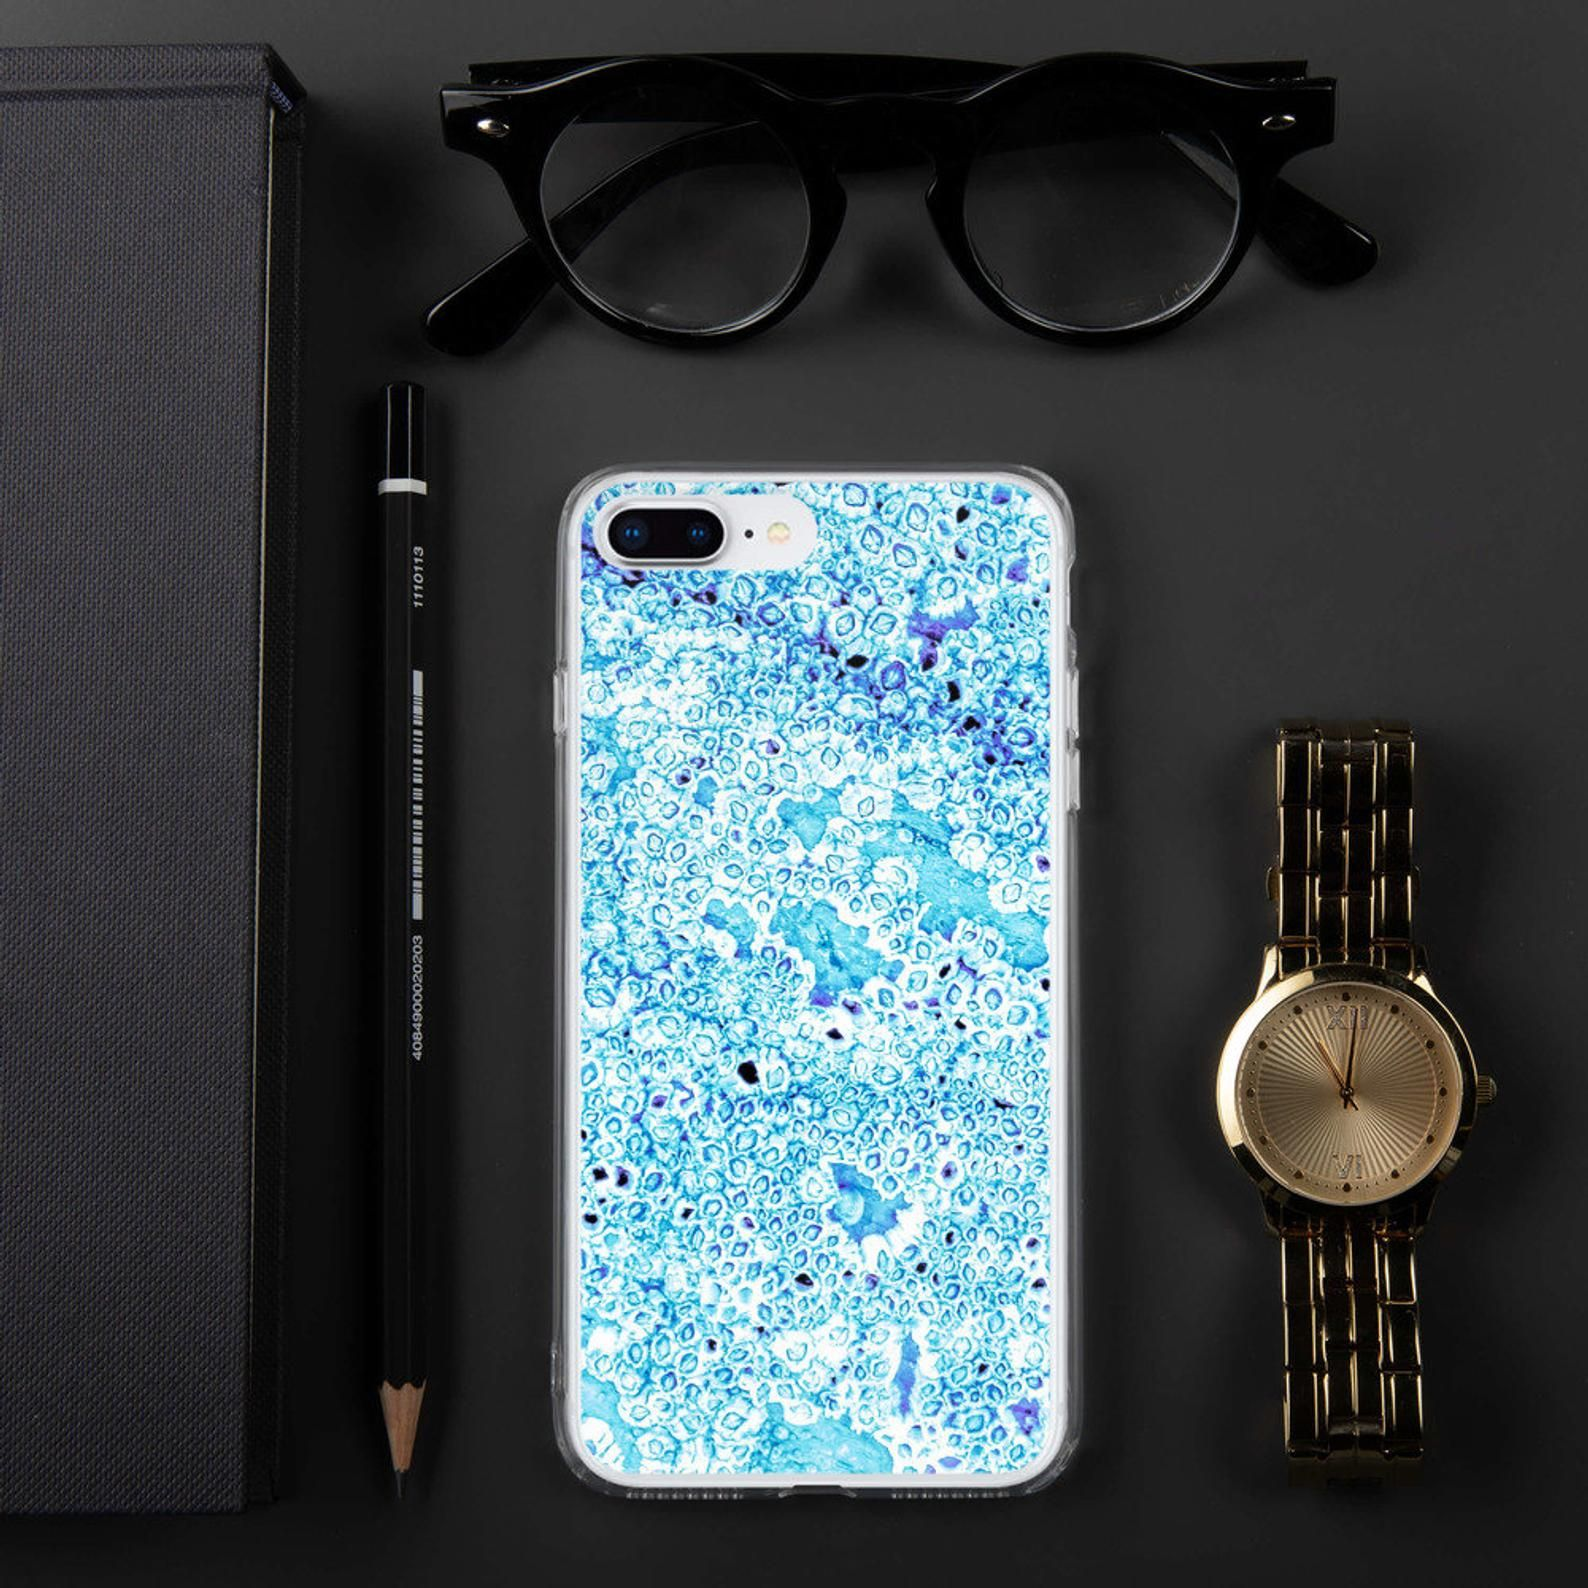 watch b27d1 896a6 iPhone and Samsung Turquoise Wallet, Snap or Silicone Case - Samsung ...